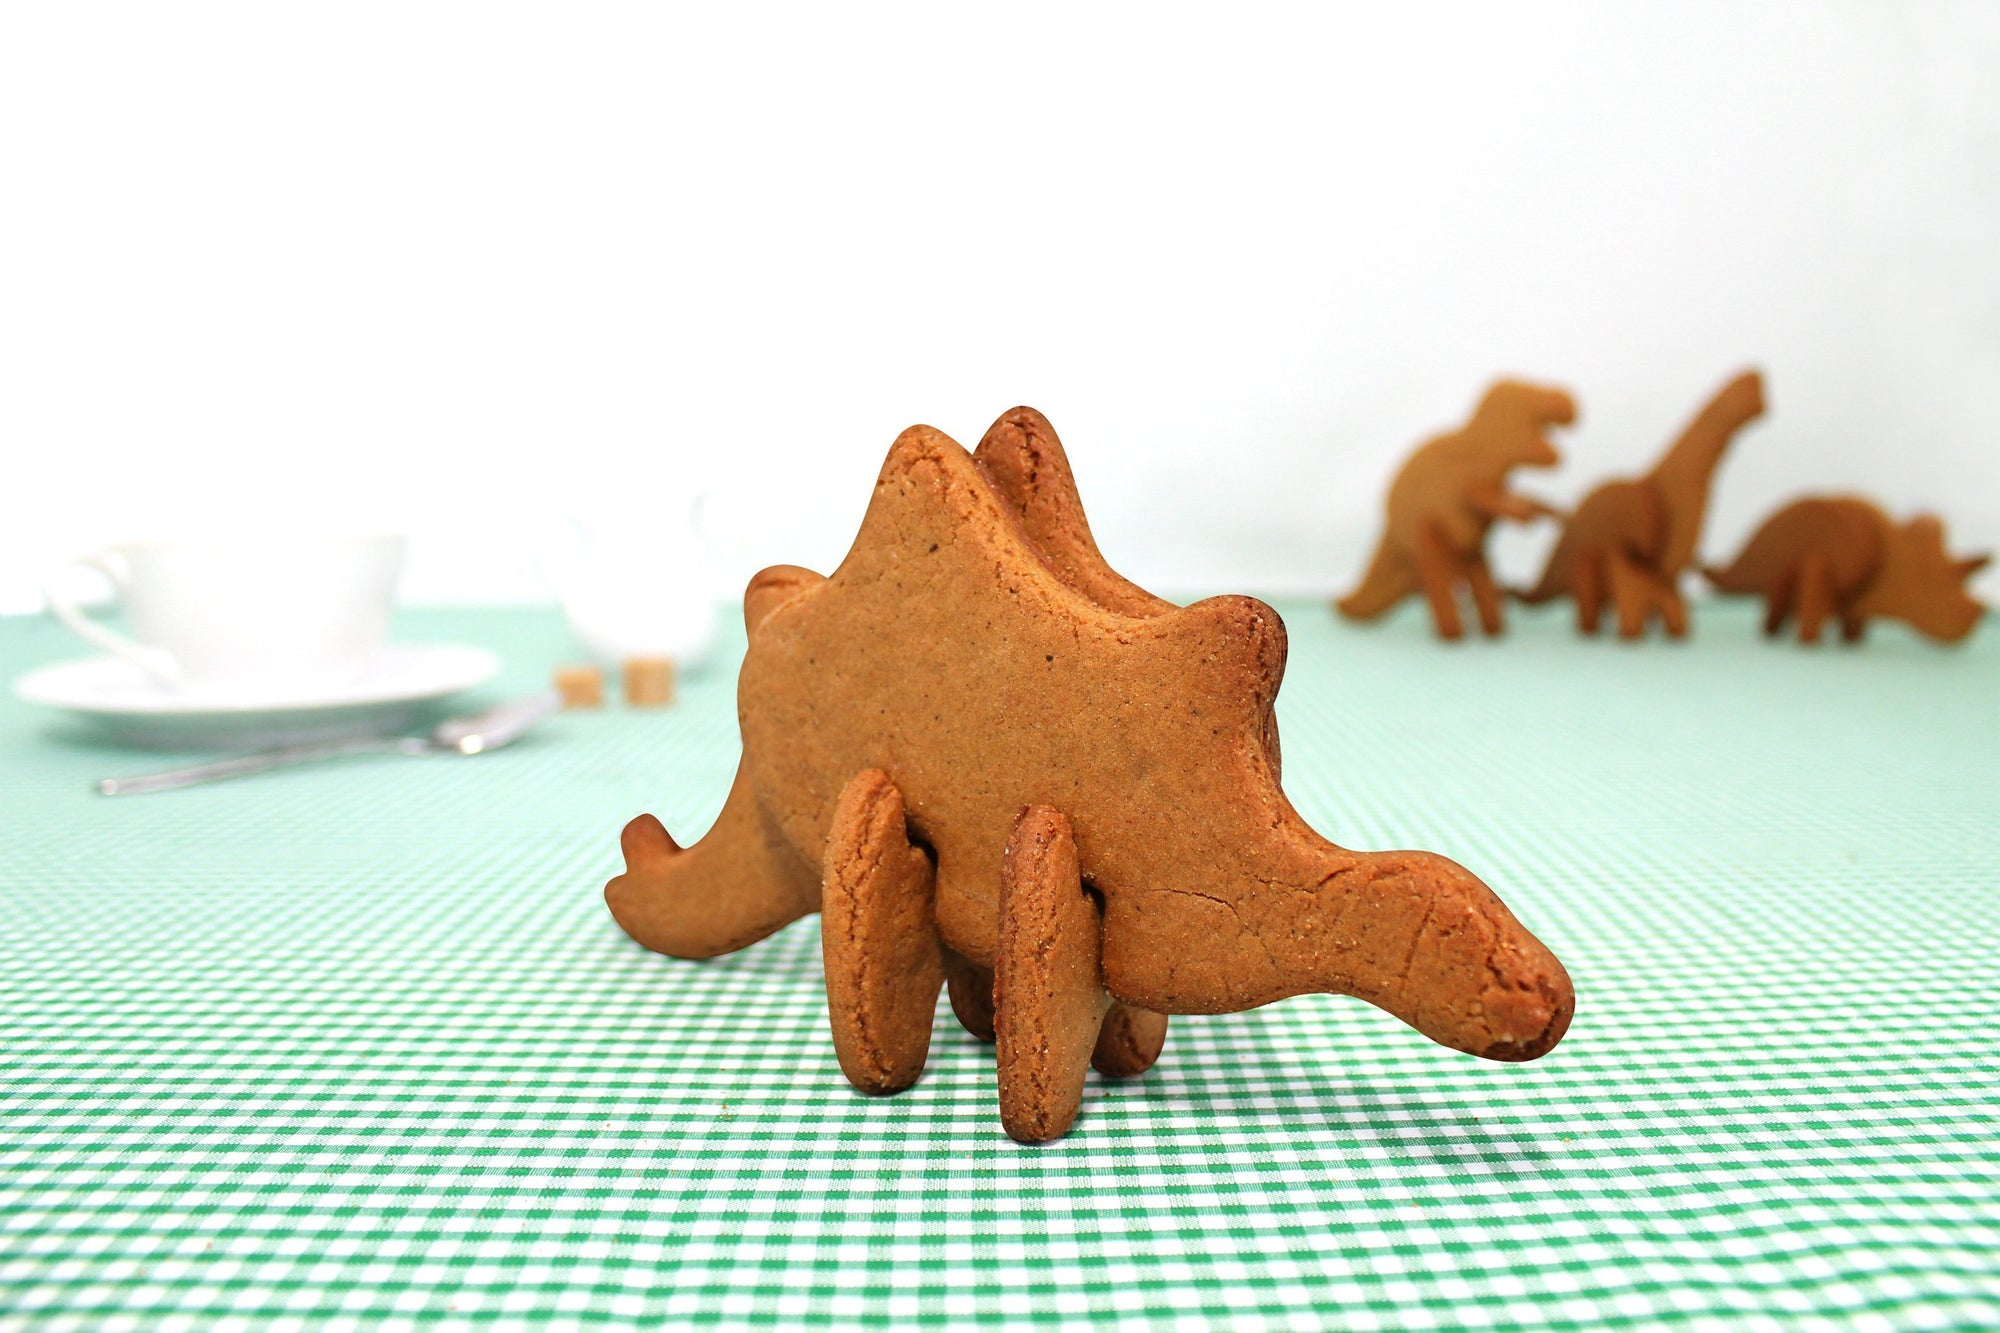 Dinosaur 3D Cookie Cutters | by Suck UK - Stegosaurus - SUCK UK - Yellow Octopus